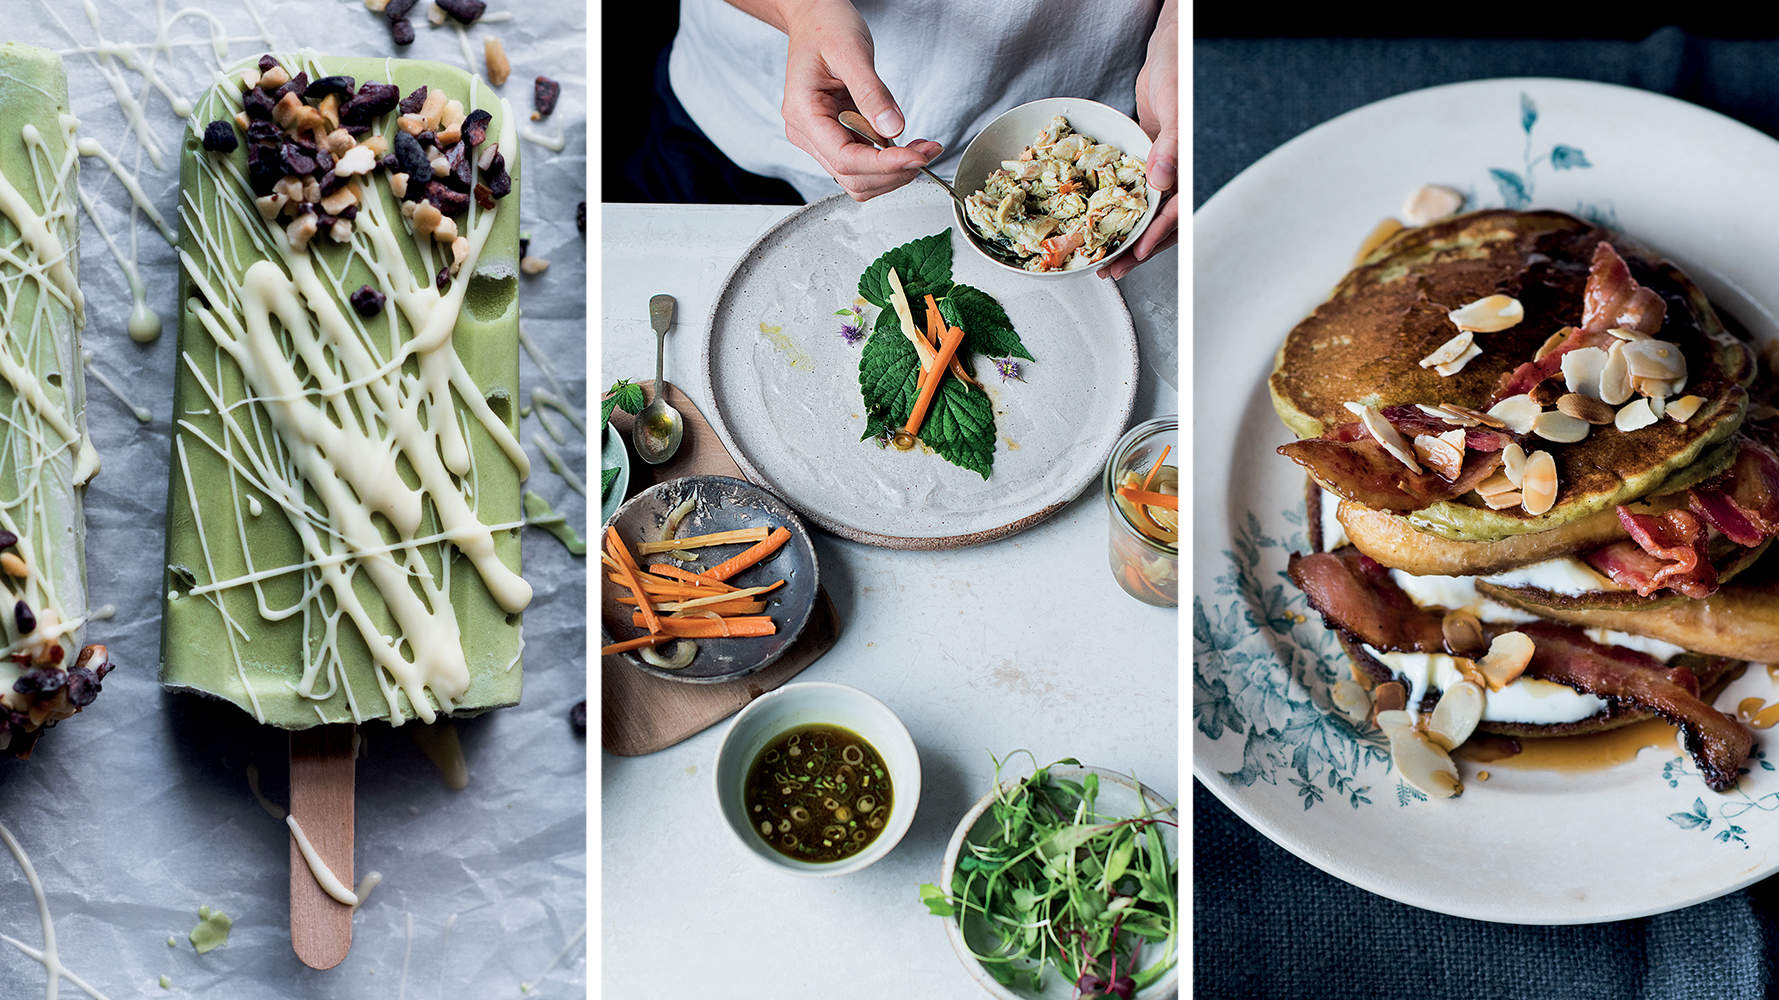 4 Ways to Cook With Matcha That Are Seriously Delicious